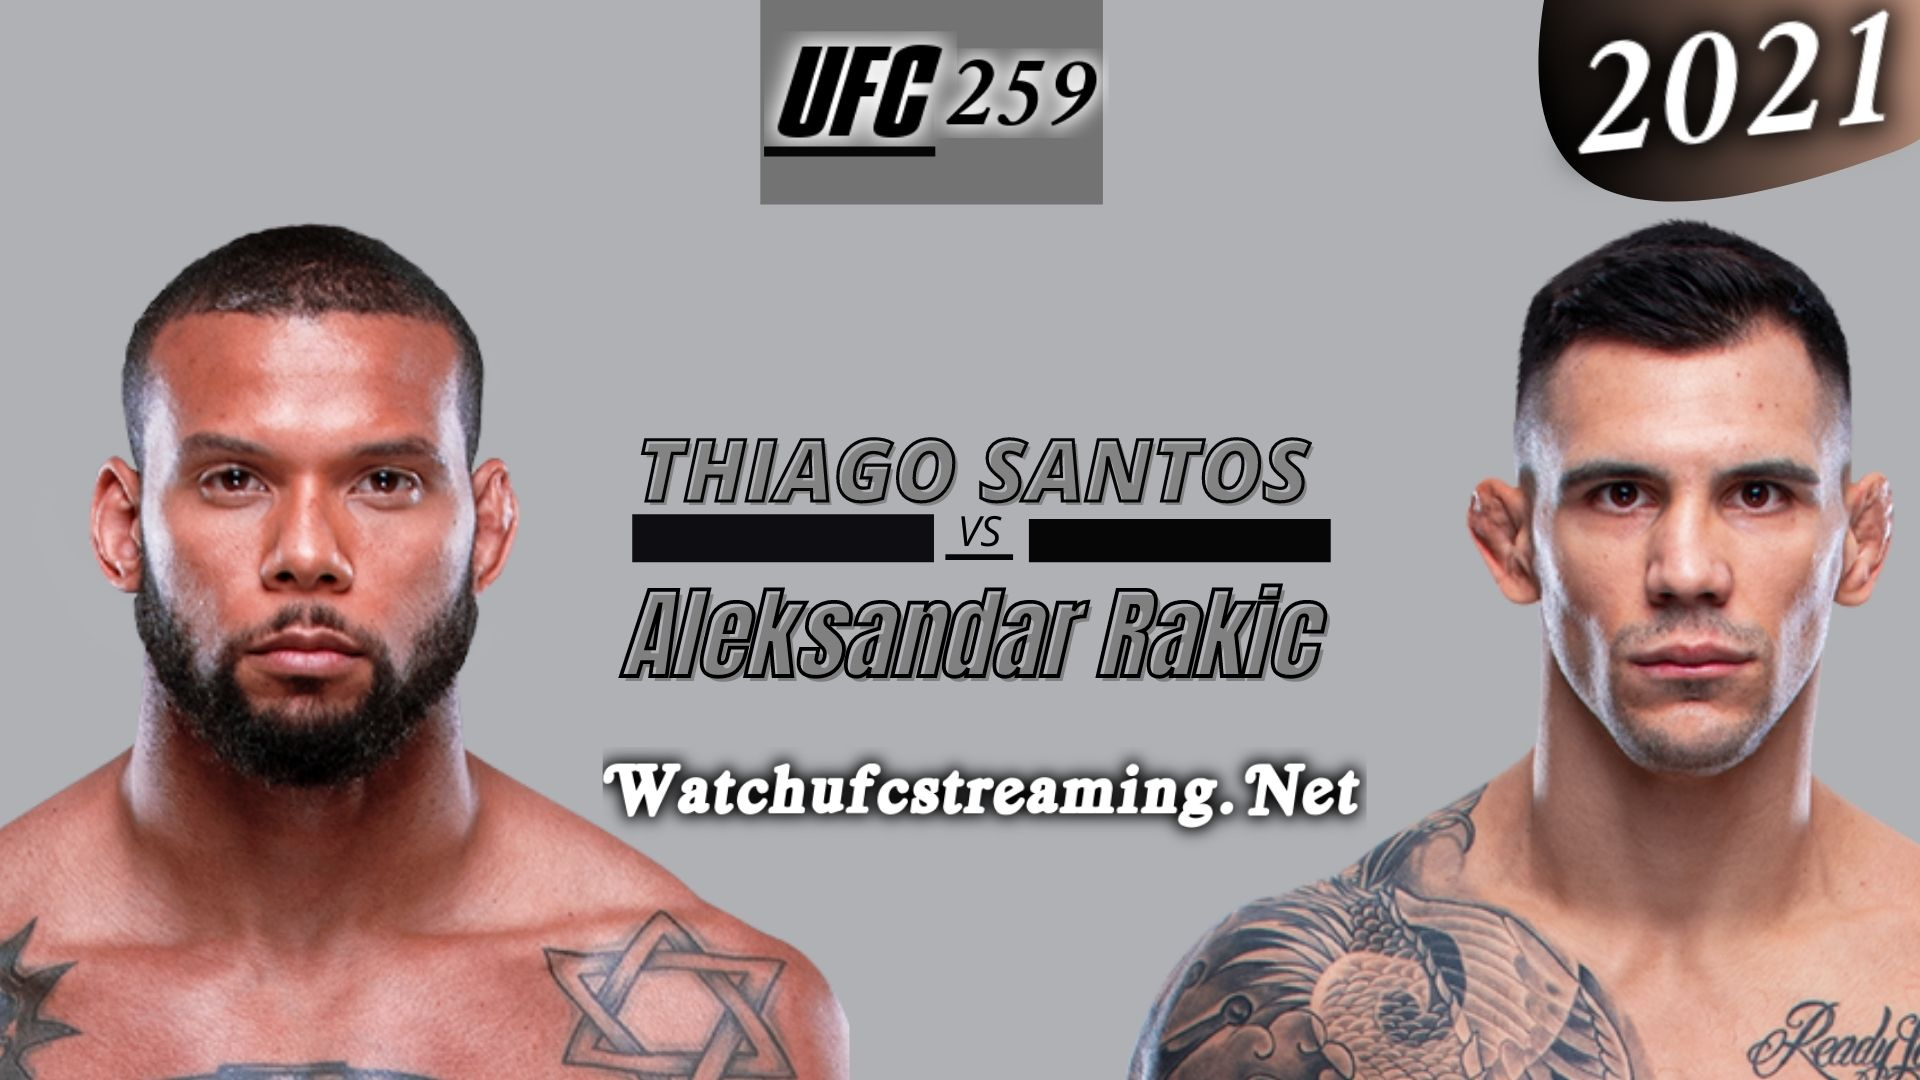 UFC 259: Thiago Santos Vs Aleksandar Rakic Highlights 2021 | Light Heavyweight